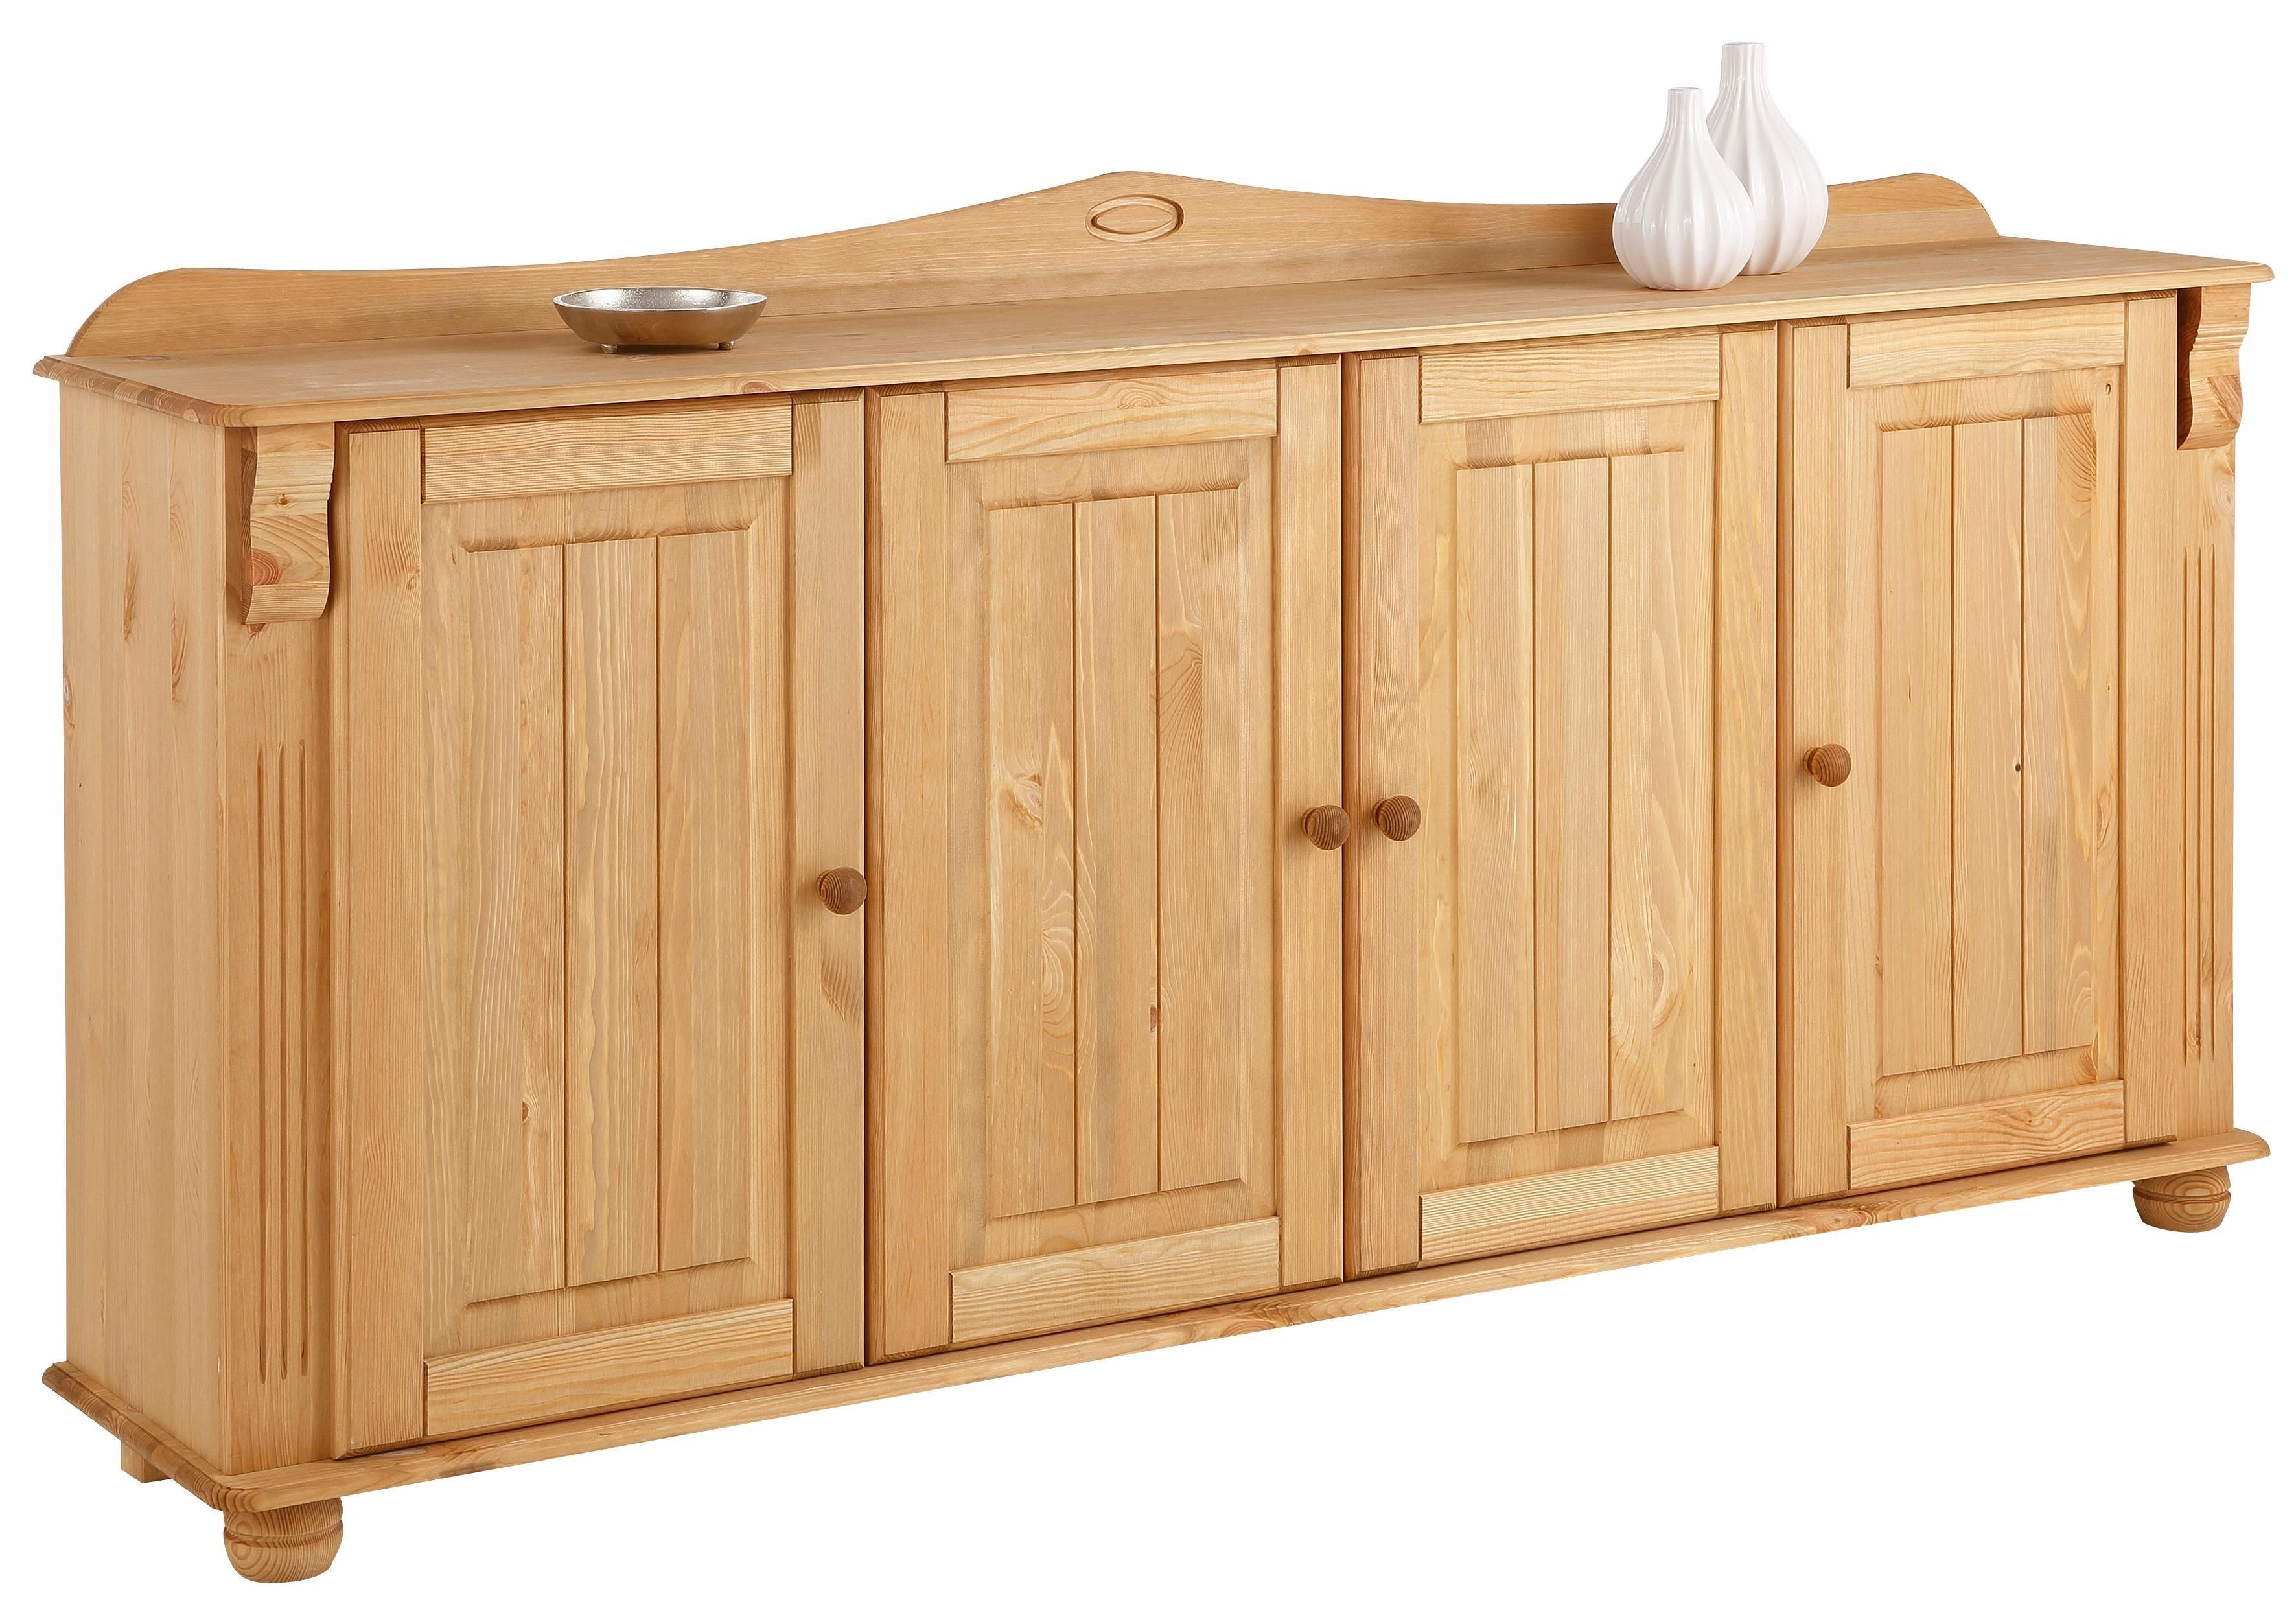 Home Affaire Sideboard Adele Sideboard Weiss Hochglanz